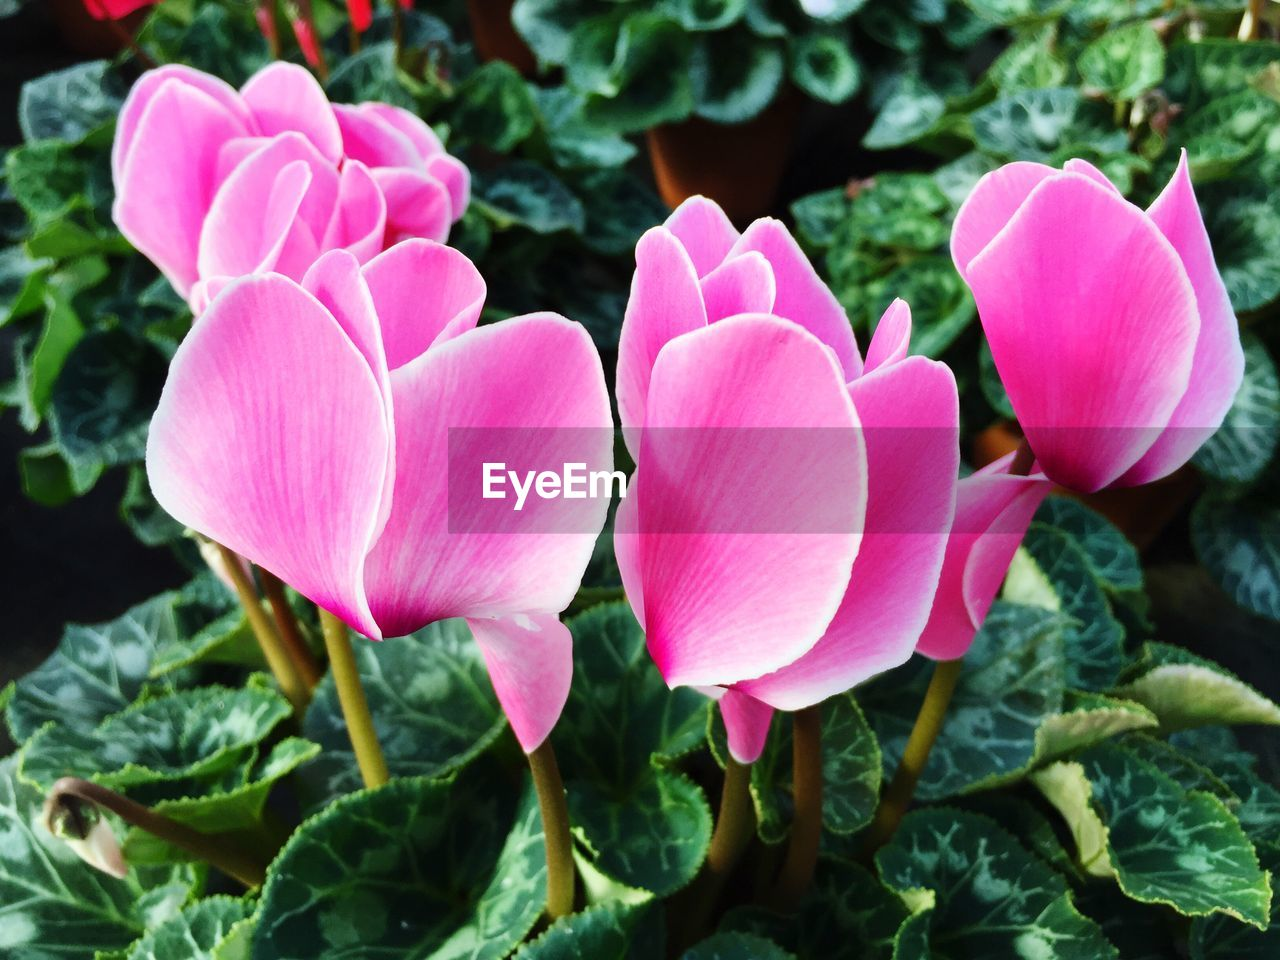 flower, petal, growth, nature, pink color, beauty in nature, plant, freshness, fragility, flower head, leaf, blooming, no people, outdoors, day, close-up, periwinkle